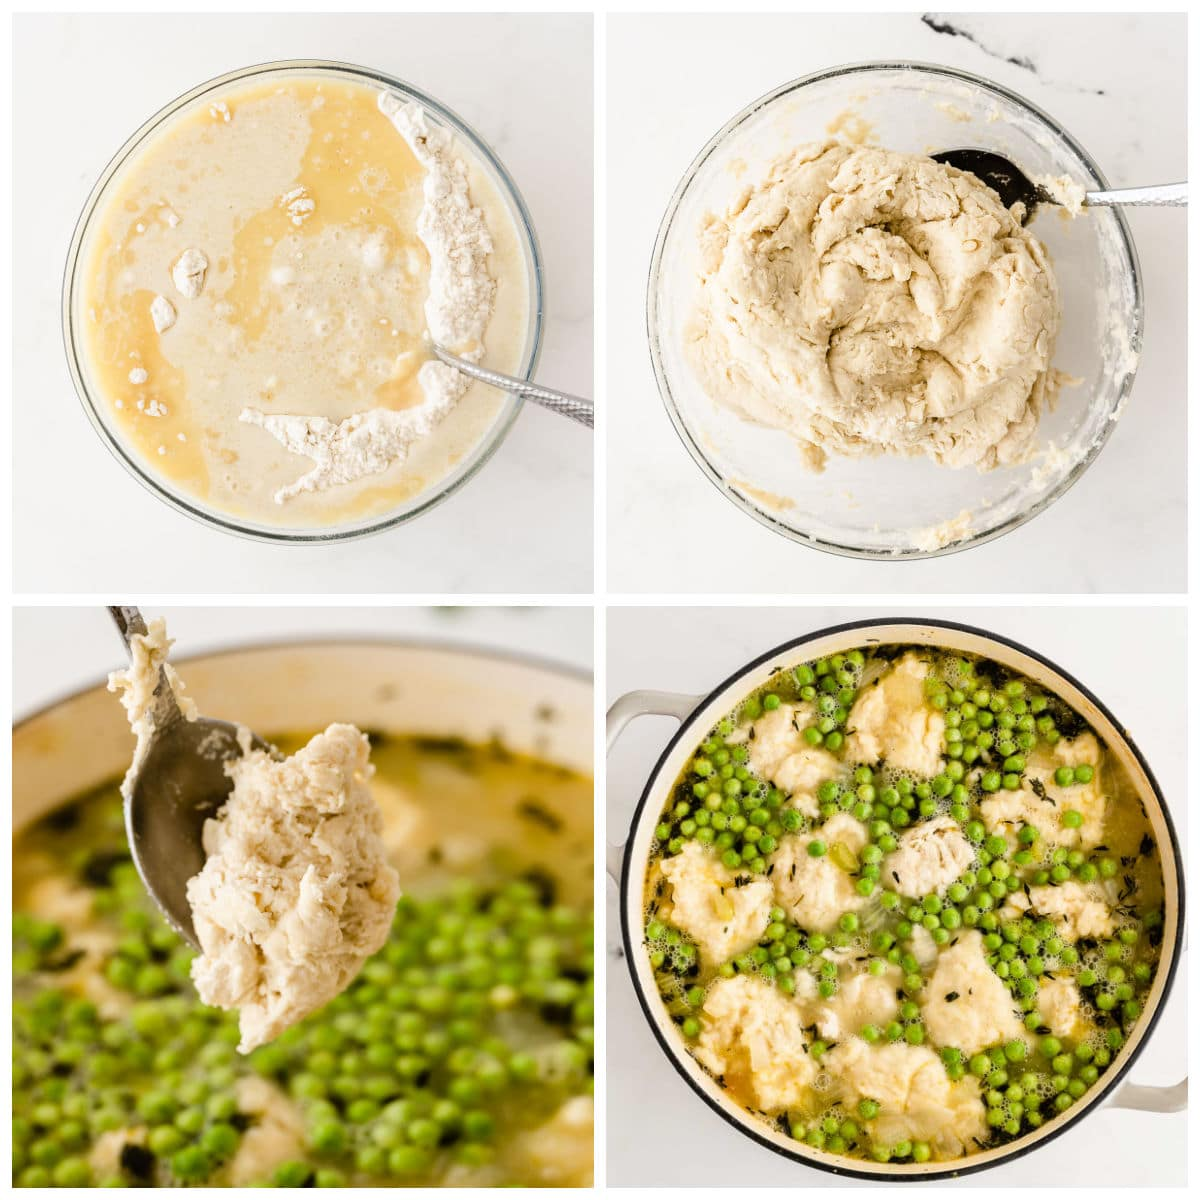 mixing dumpling dough in a glass bowl and scooping dumplings into chicken and peas soup broth